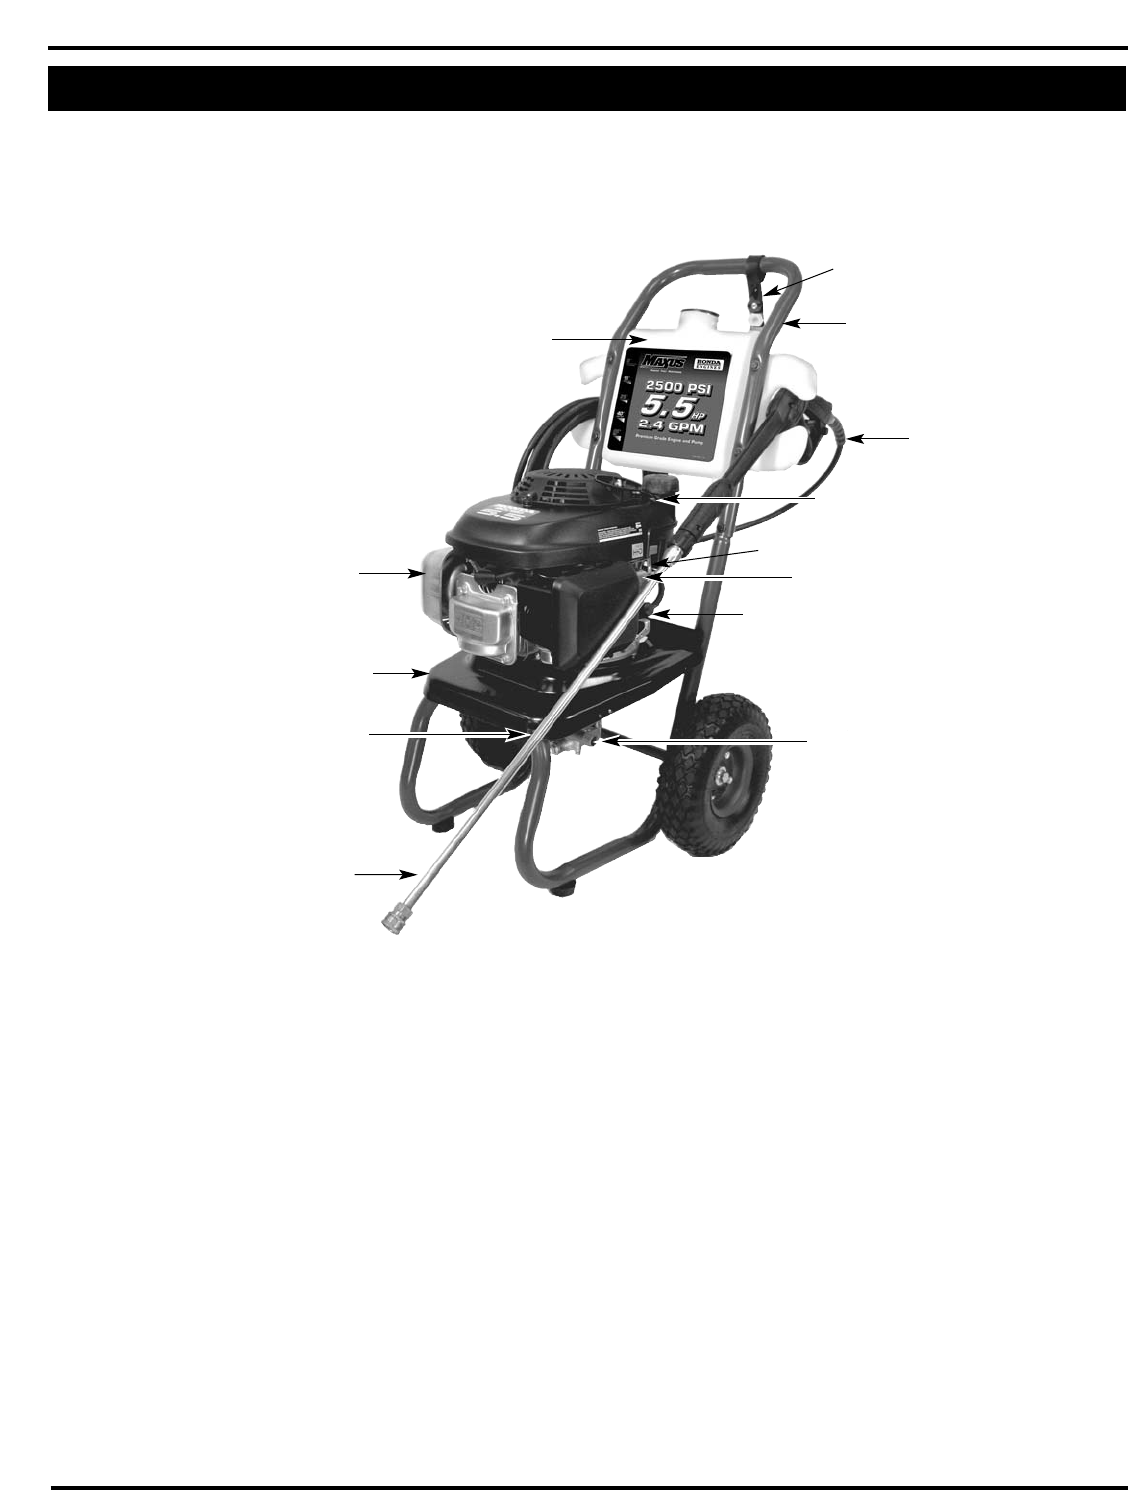 Page 2 of Campbell Hausfeld Pressure Washer PW2515 User